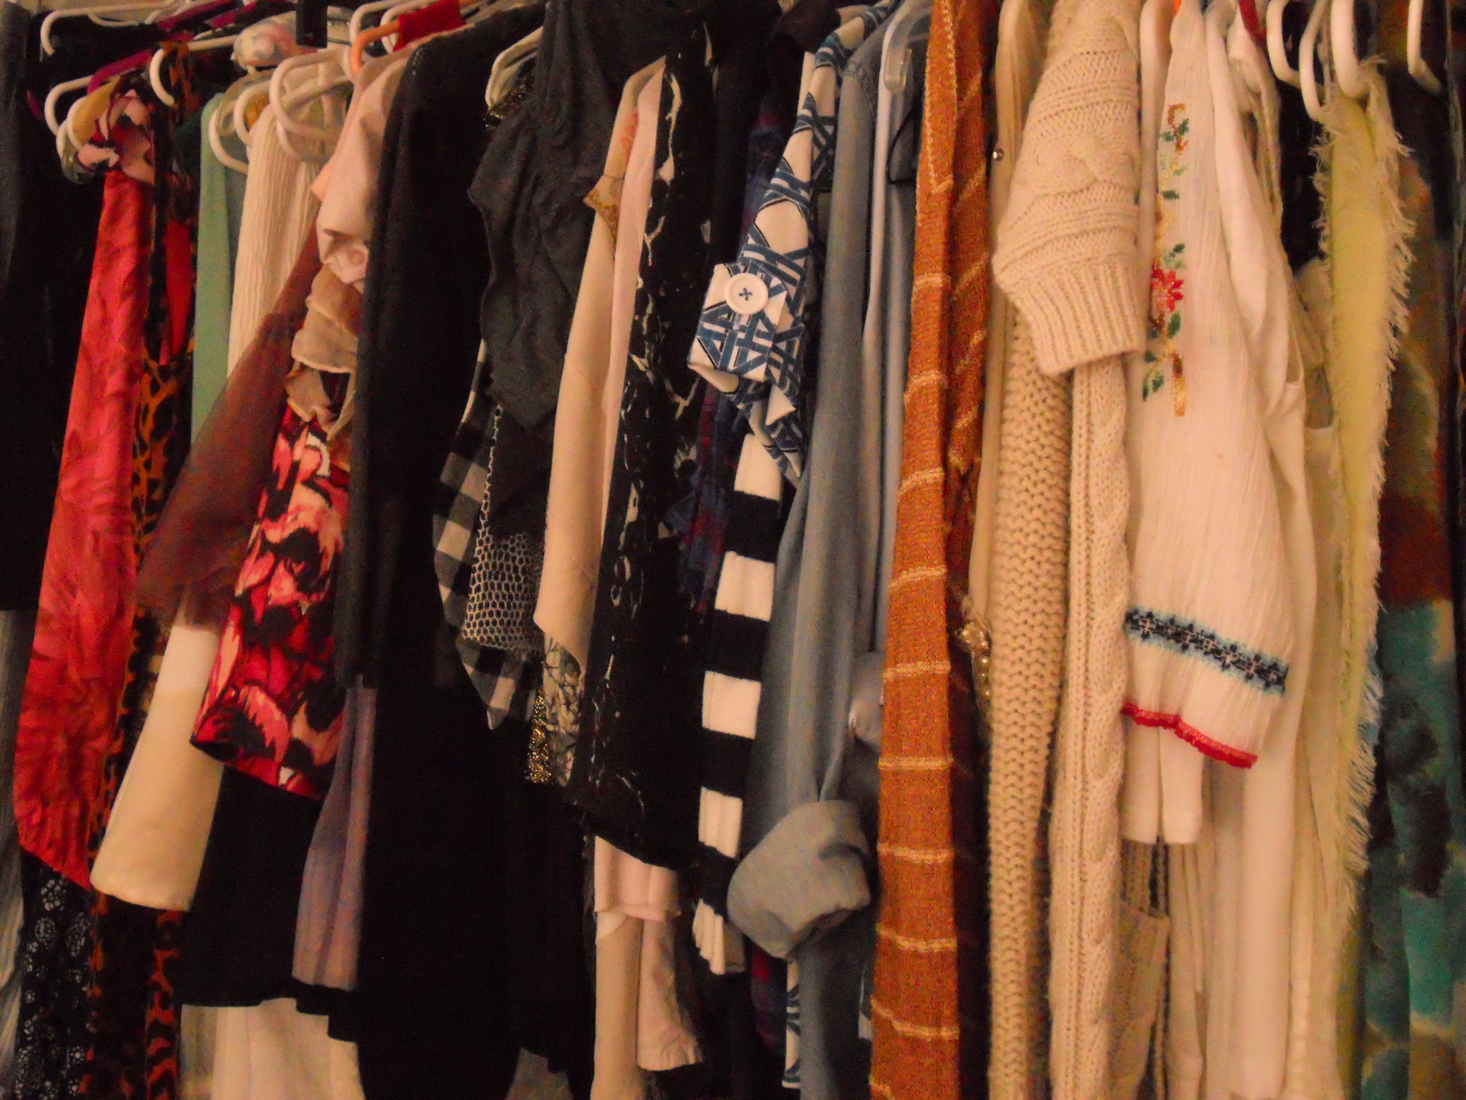 Arrange my hang up clothes by type then color